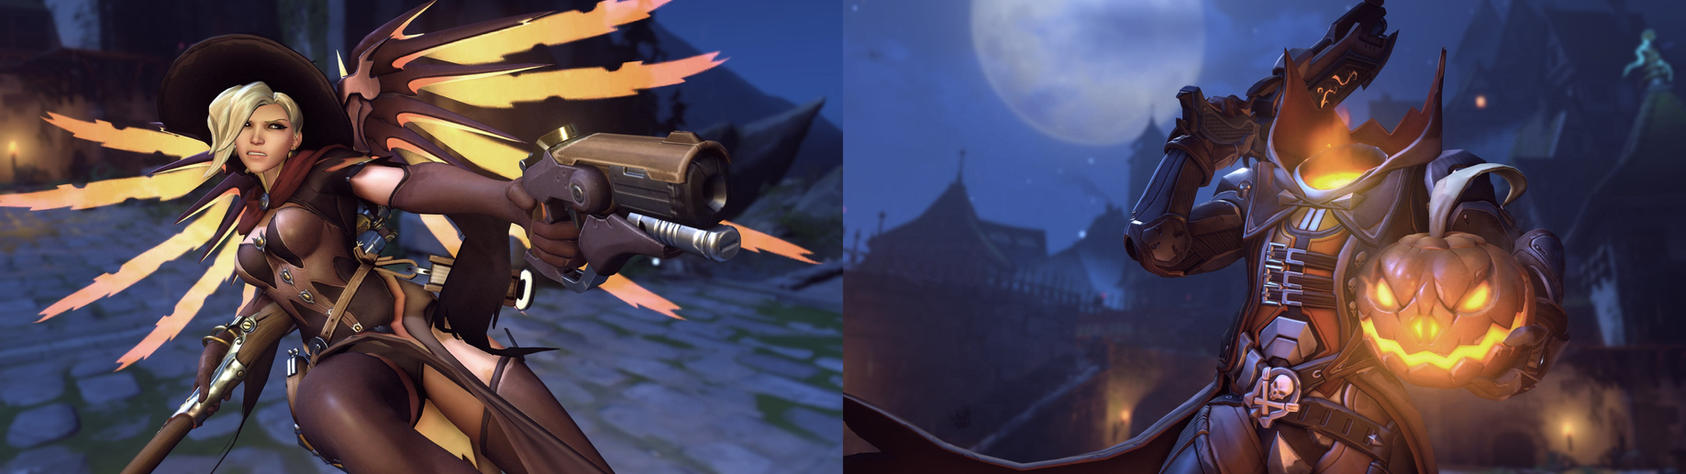 Halloween Mercy and Reaper Dual Wallpaper by The-Role-Player on ...